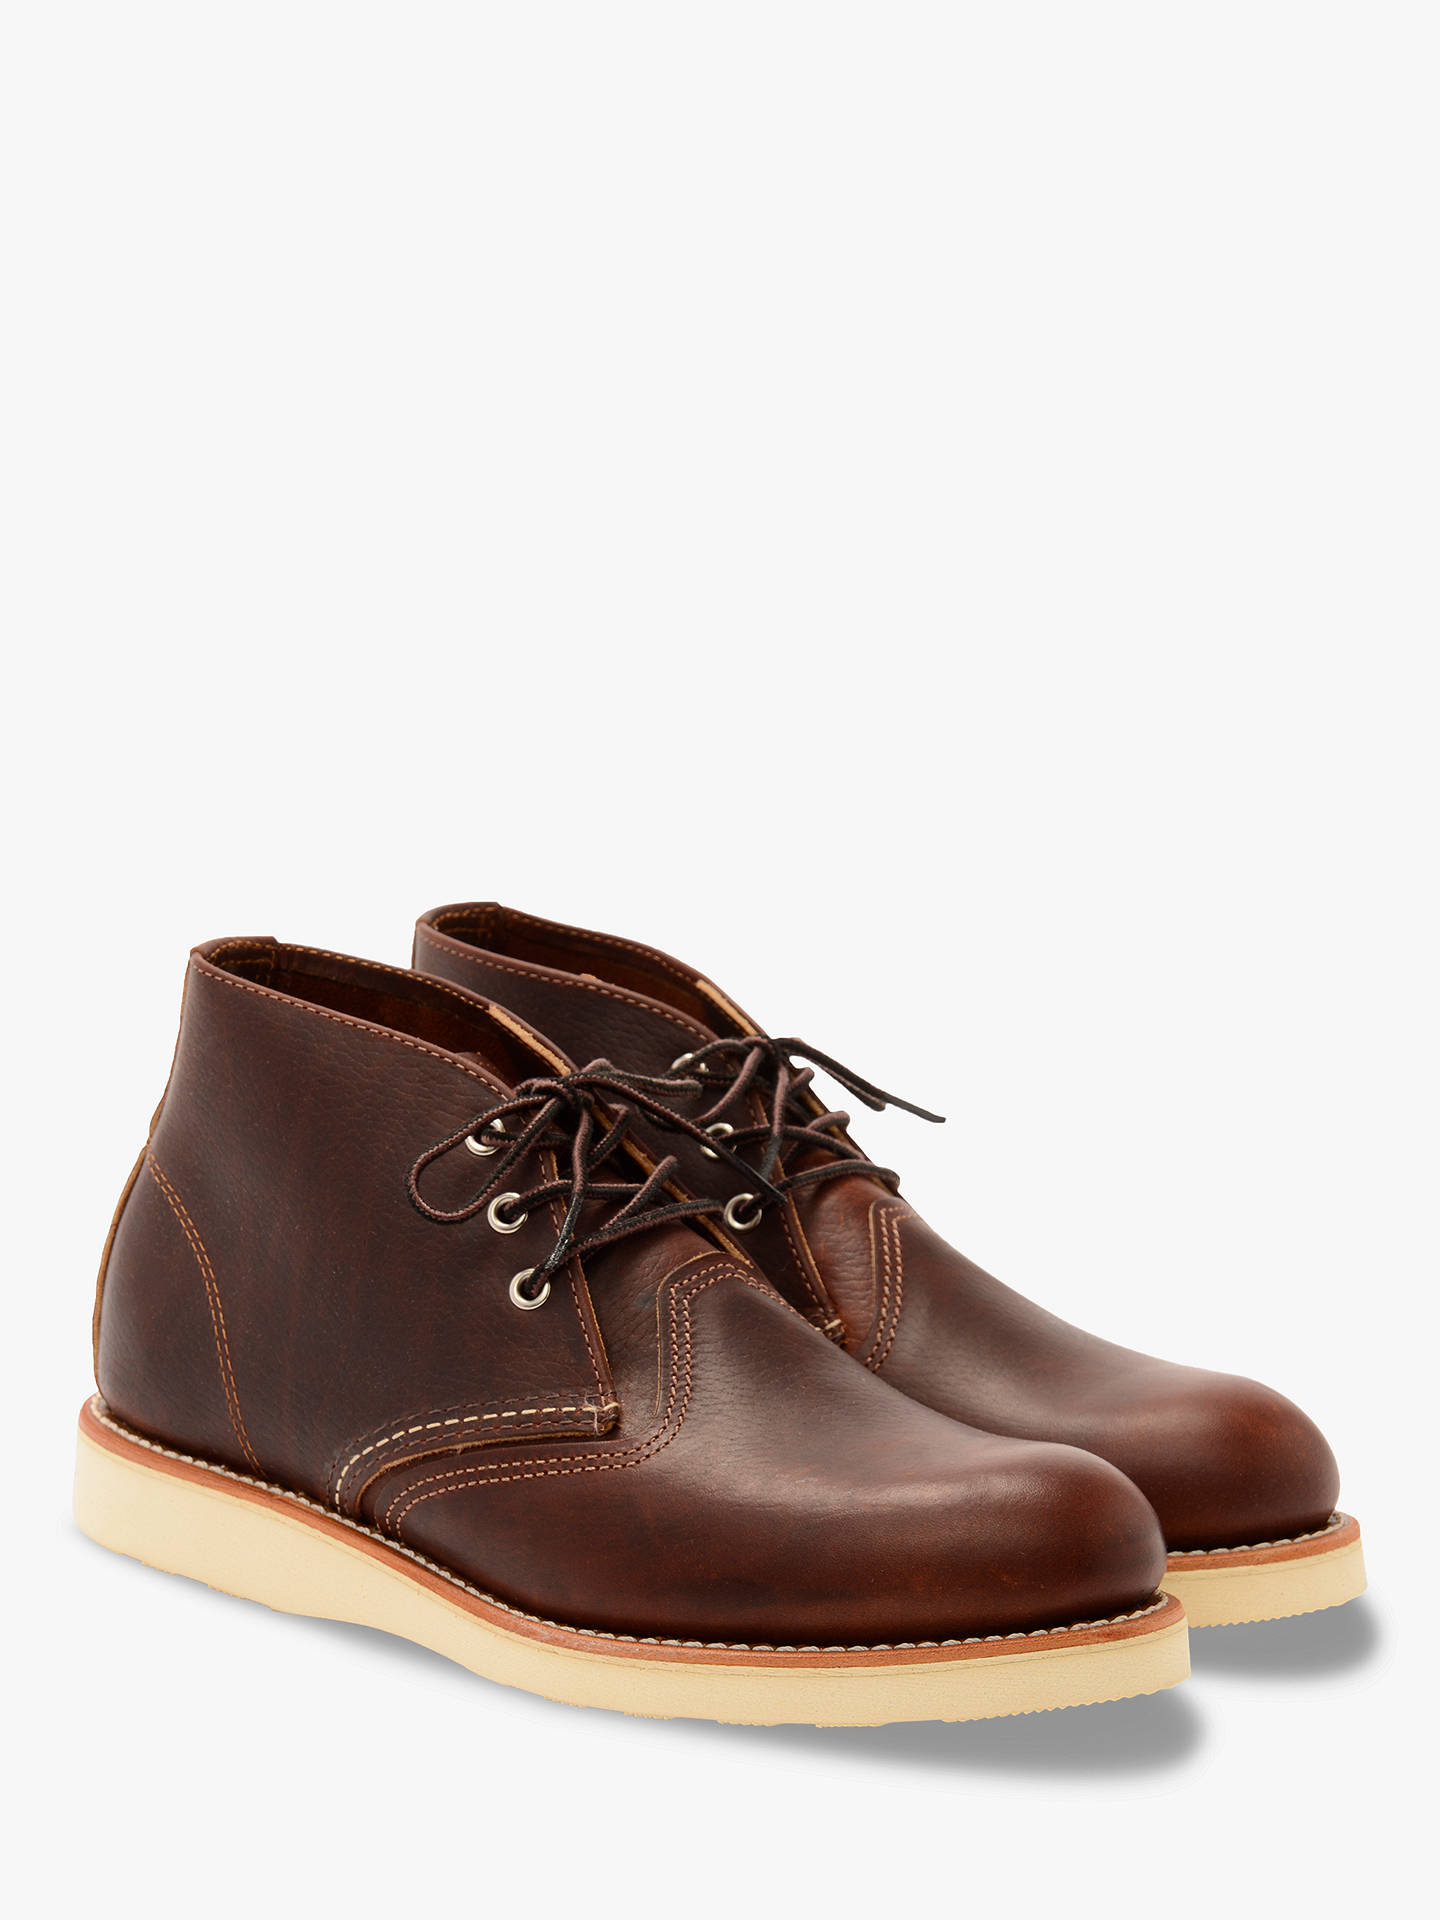 c3581722aff Red Wing 3141 Work Chukka Boot, Briar Oil Slick